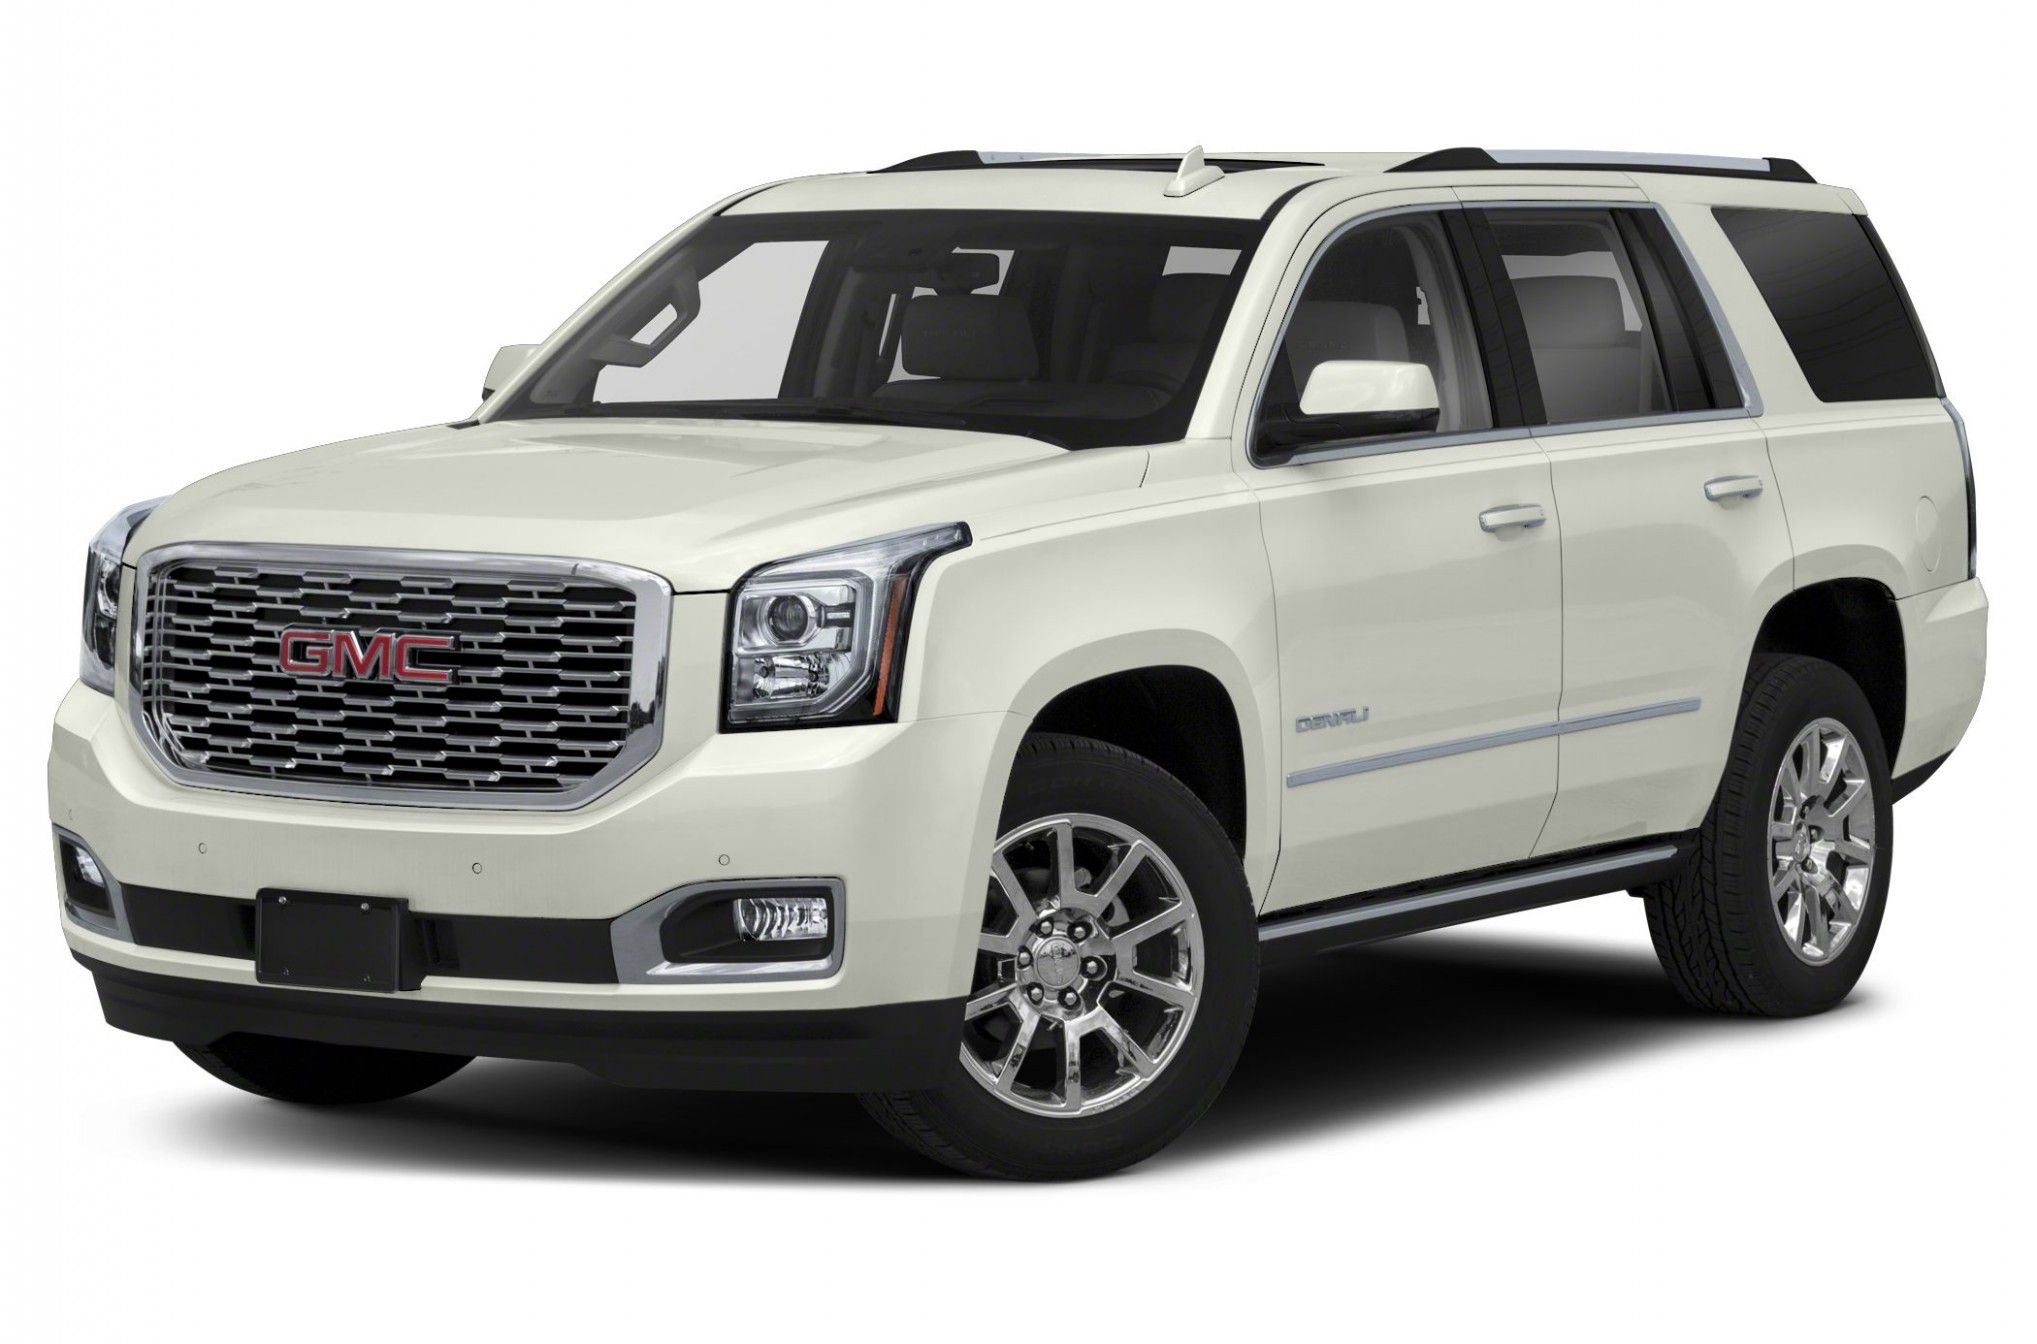 15 Doubts About 2020 Gmc Yukon Towing Capacity Design You